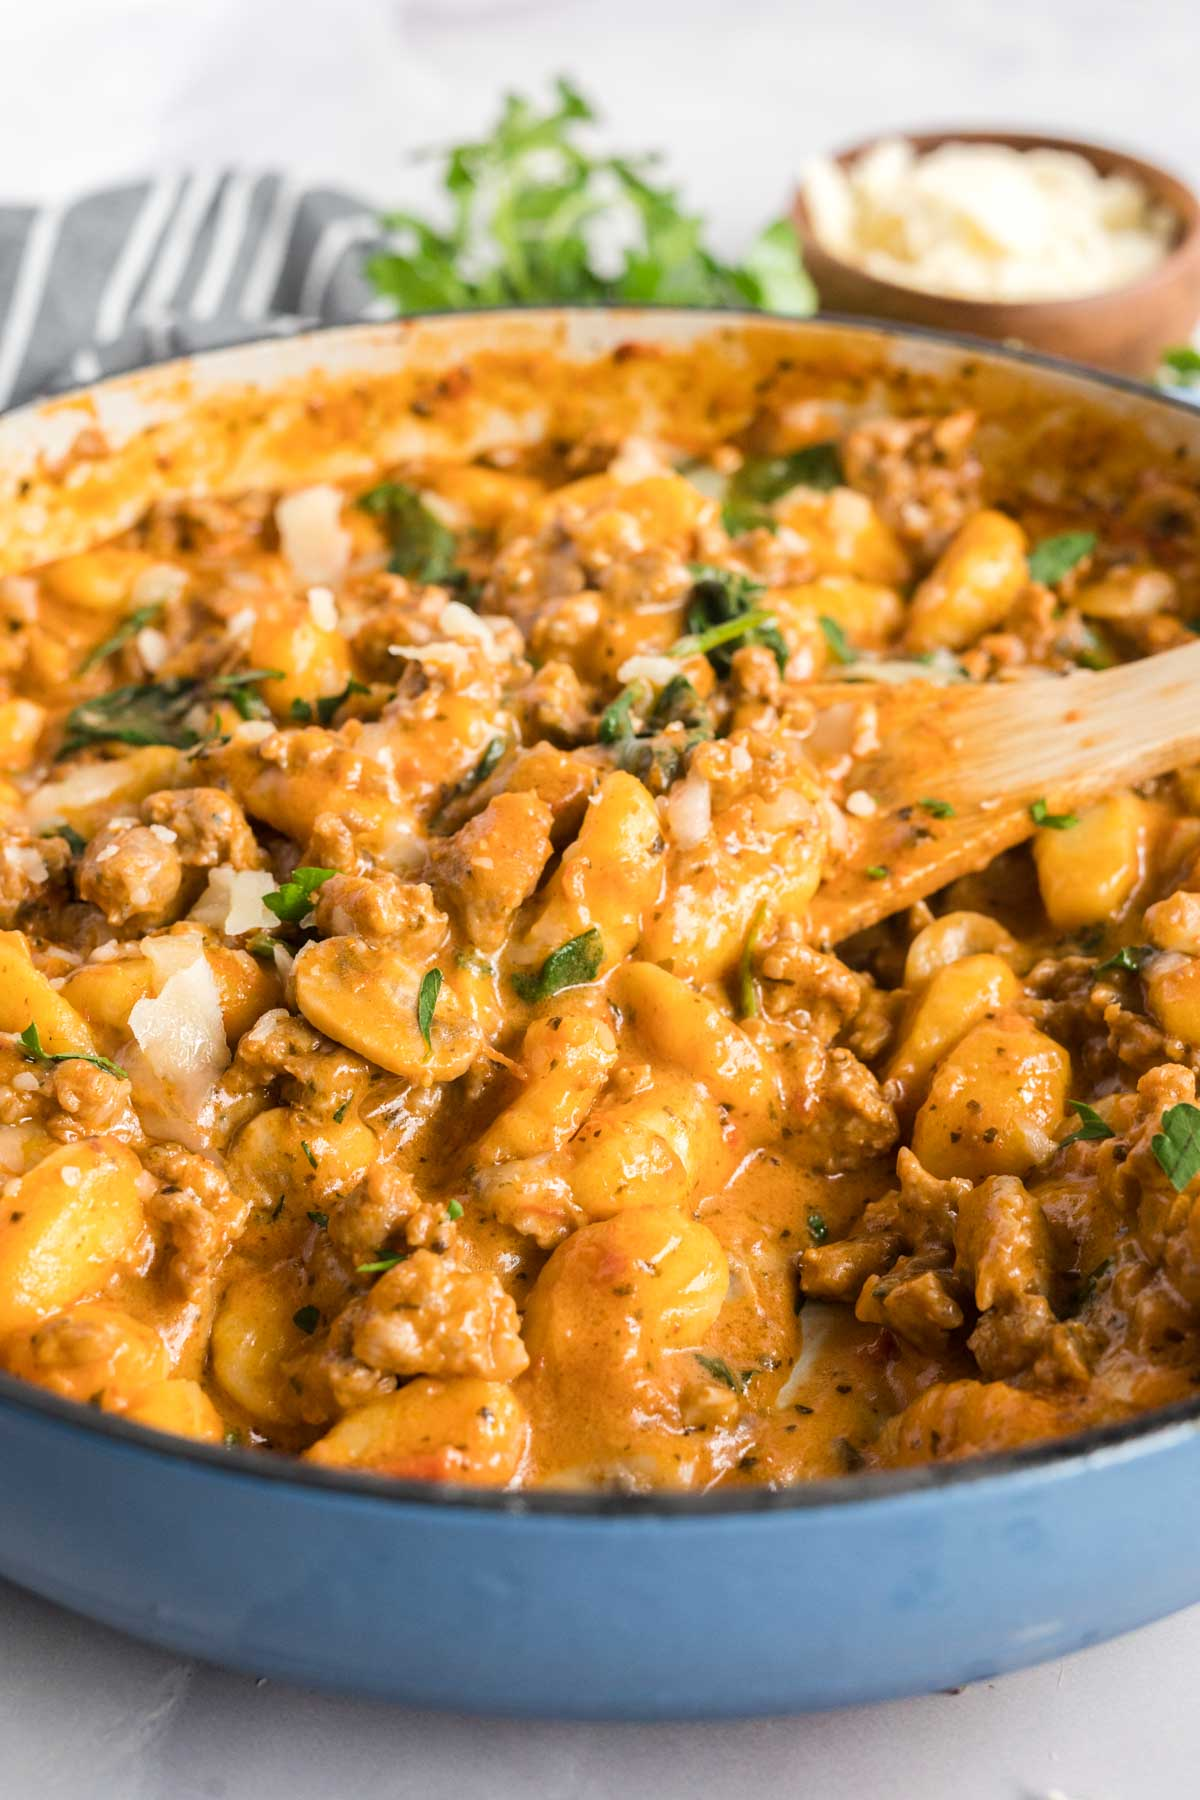 Gnocchi with red pesto sauce and Italian sausage in a blue skillet.